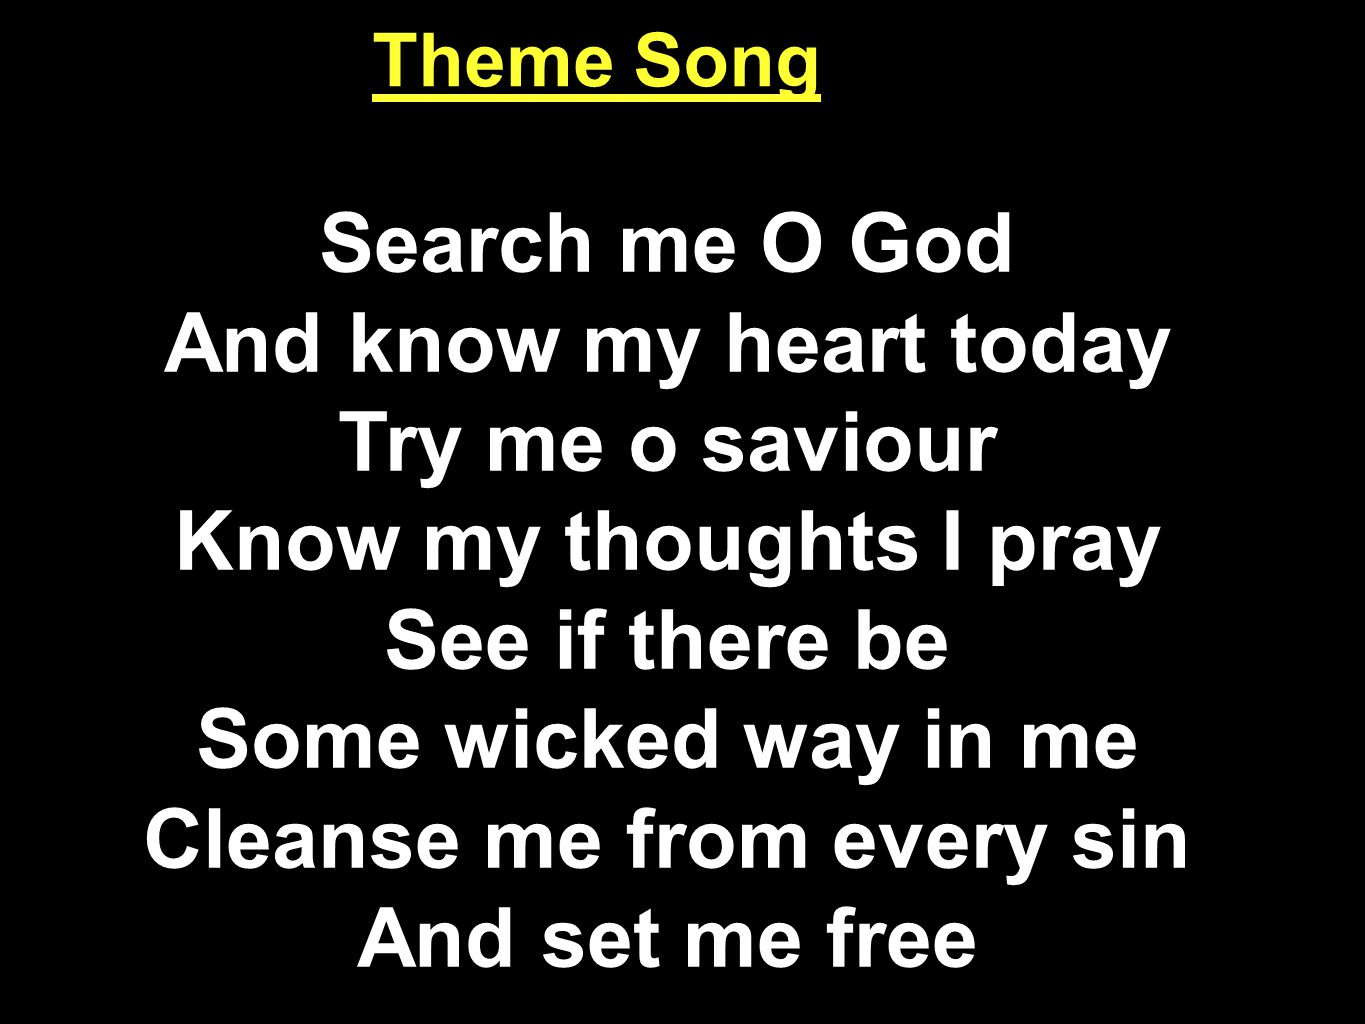 Search me O God And know my heart today Try me o saviour Know my thoughts I pray See if there be Some wicked way in me Cleanse me from every sin And set me free Theme Song